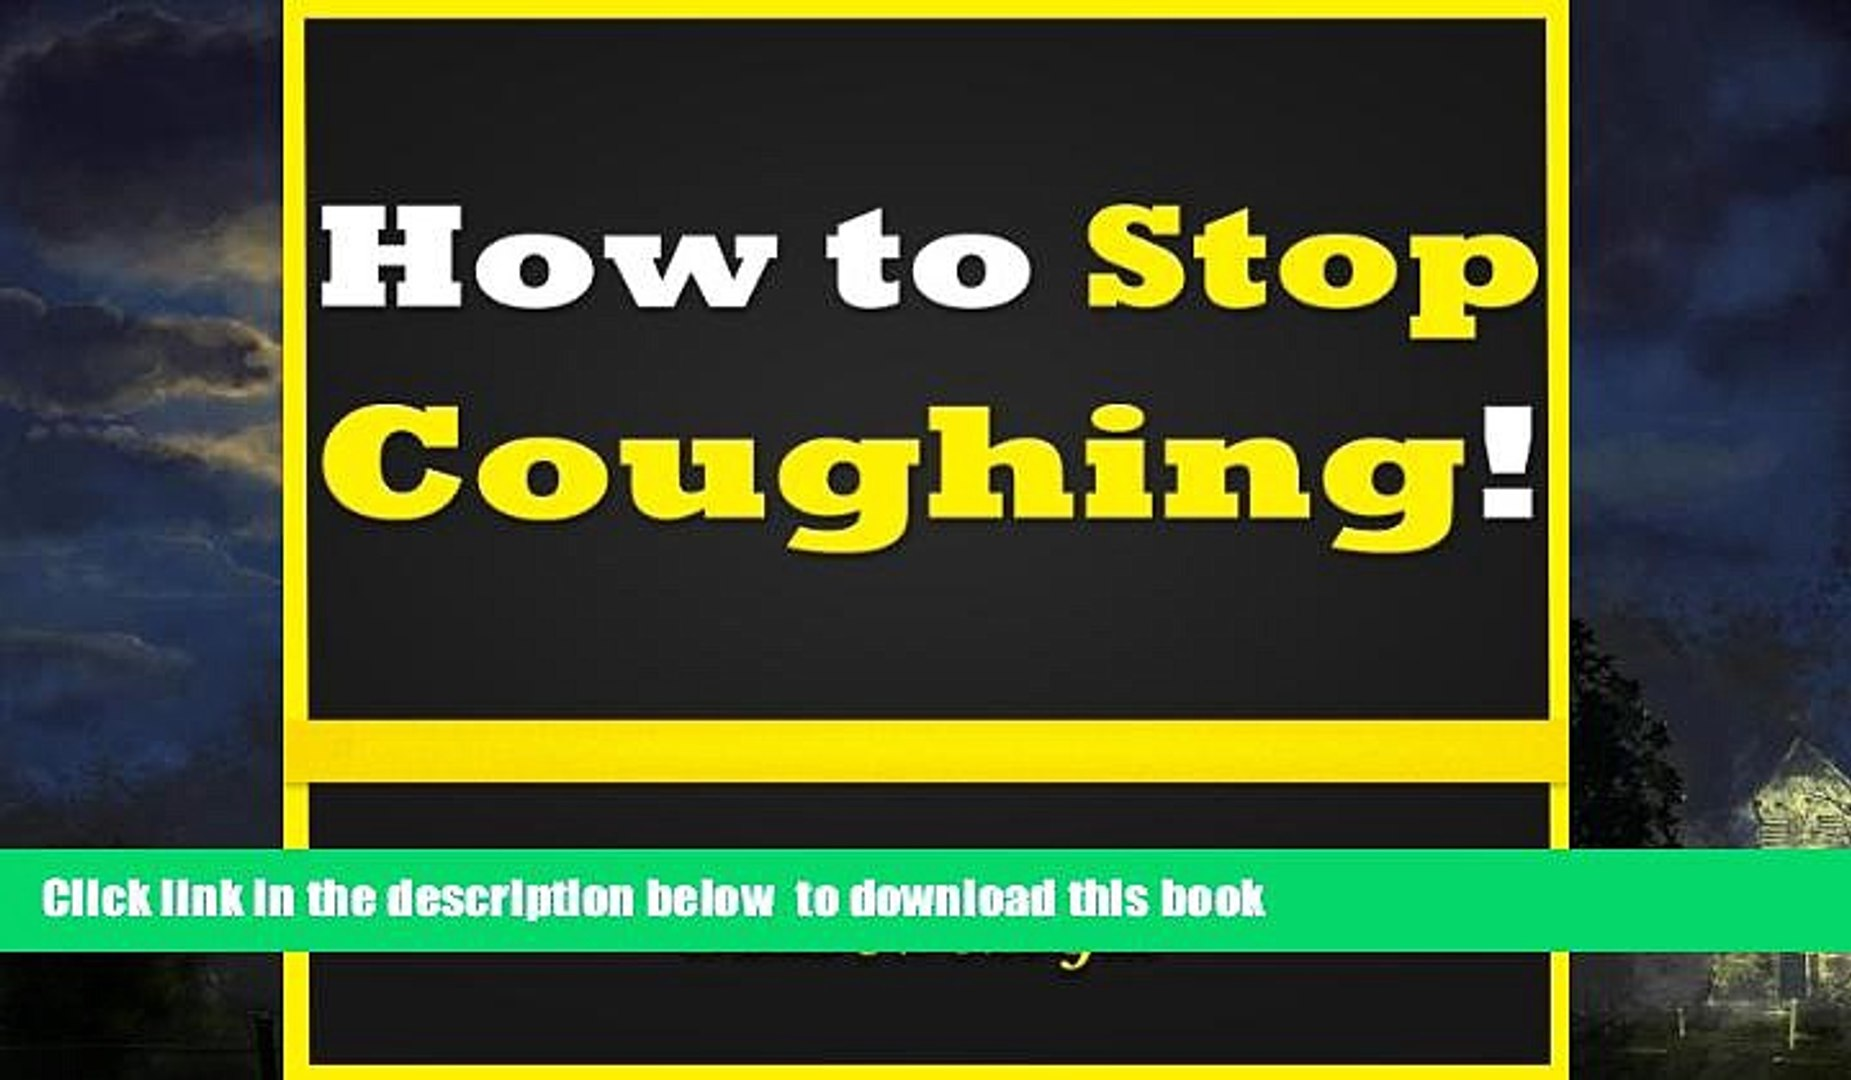 liberty books  How to Stop Coughing: Discover How to Stop a Cough and How to Get Rid of a Cough